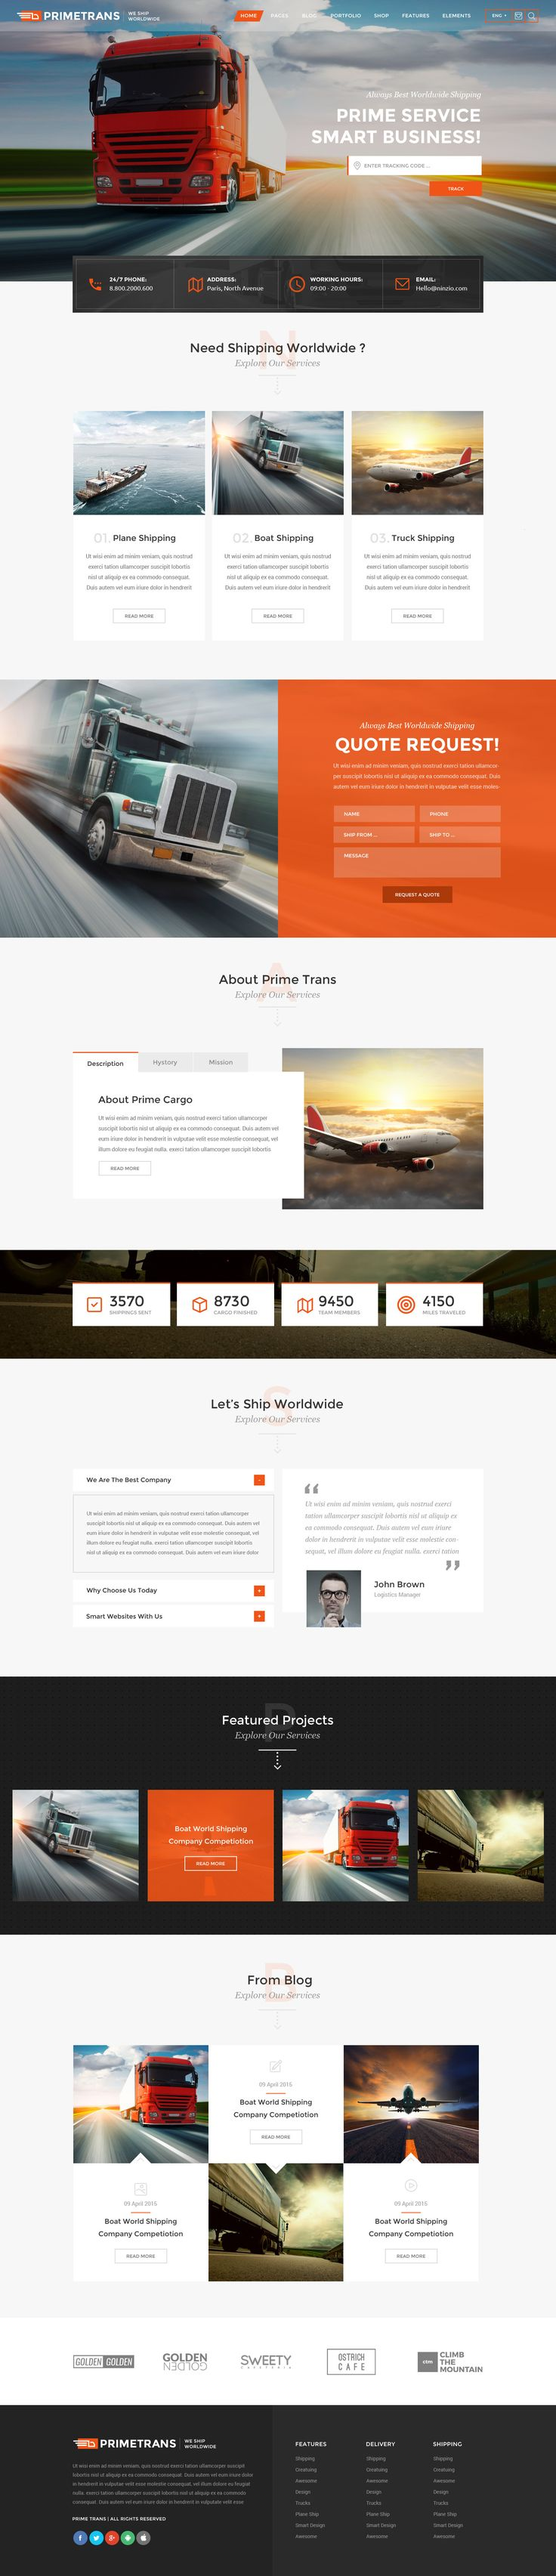 Prime Trans can be usd for any tipe of #logistics and transport companies. This is powerful PSD #template with tons of customization options and features.We have created 13 #PSD files, which you can change and customize easily. 3 Home page layouts included and inner pages. Also you can find blog, Portfolio and Shop Designs, loop and inner. We hope you will like our hard work.